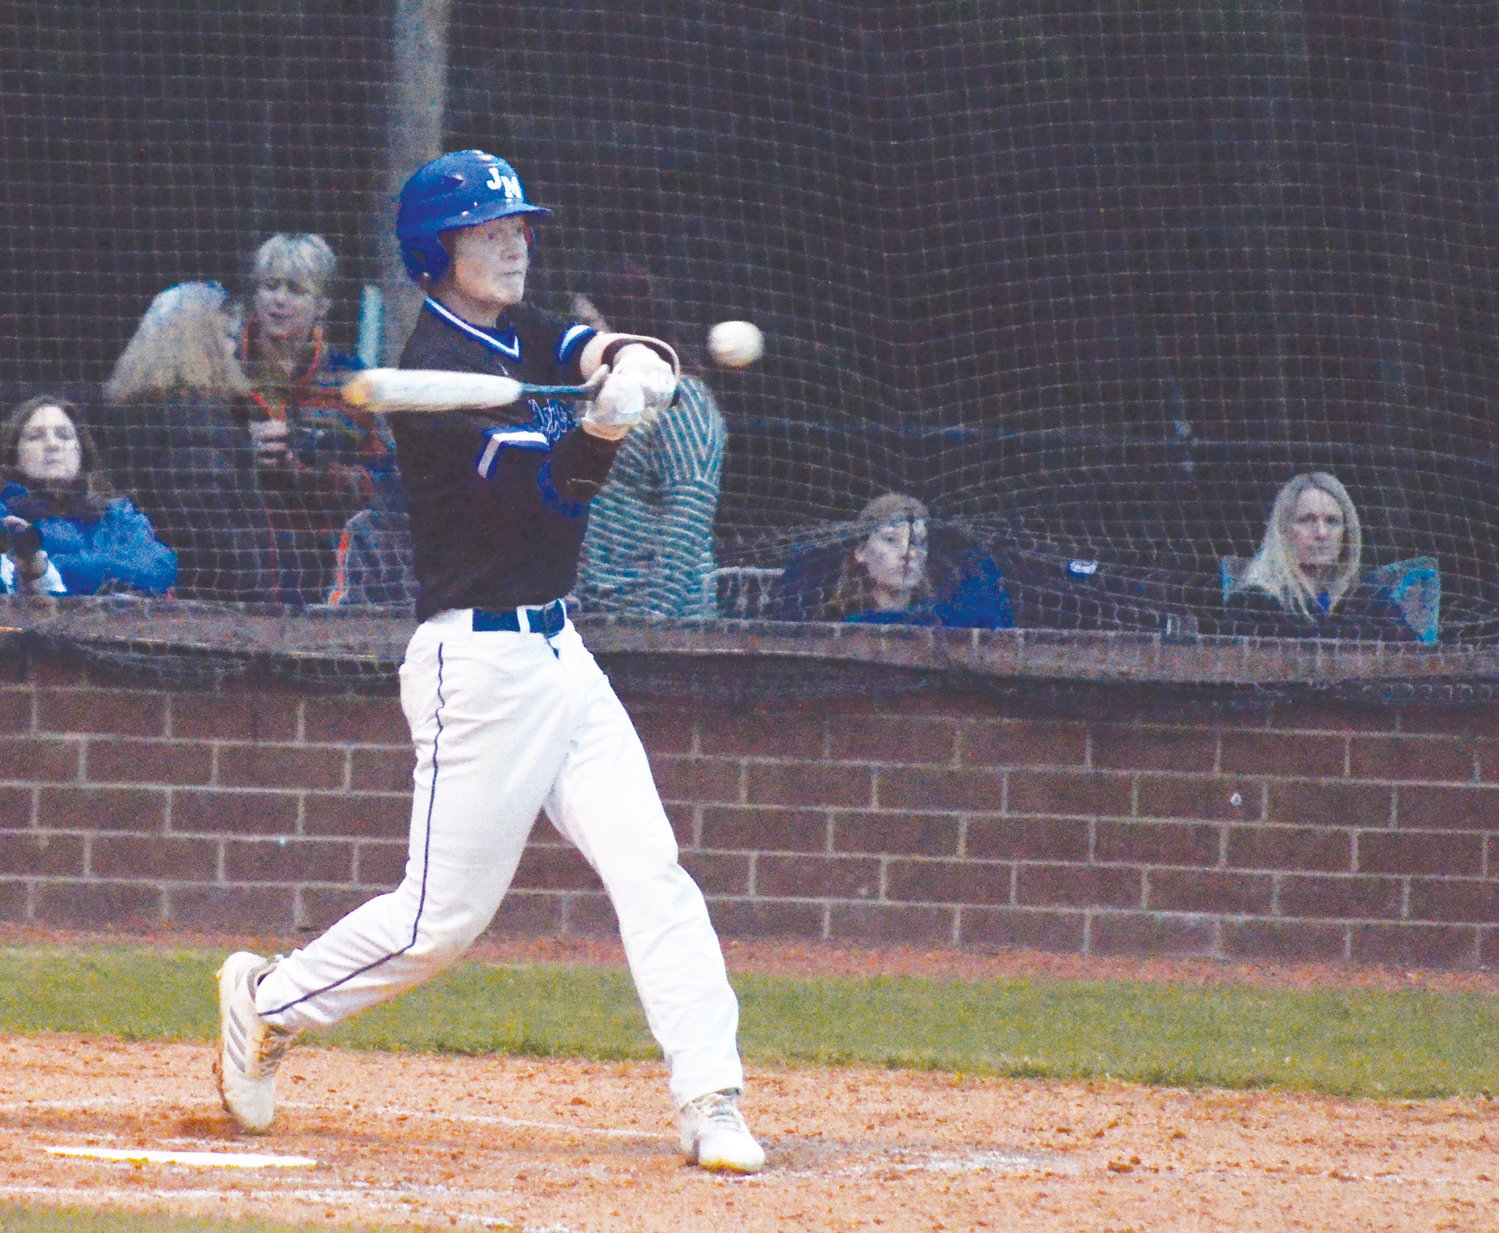 Jordan Matthews Christopher Morgan takes a swing in recent high school action. Morgan and the Jets rolled past Union Pines 12-1 in Cameron on Thursday.